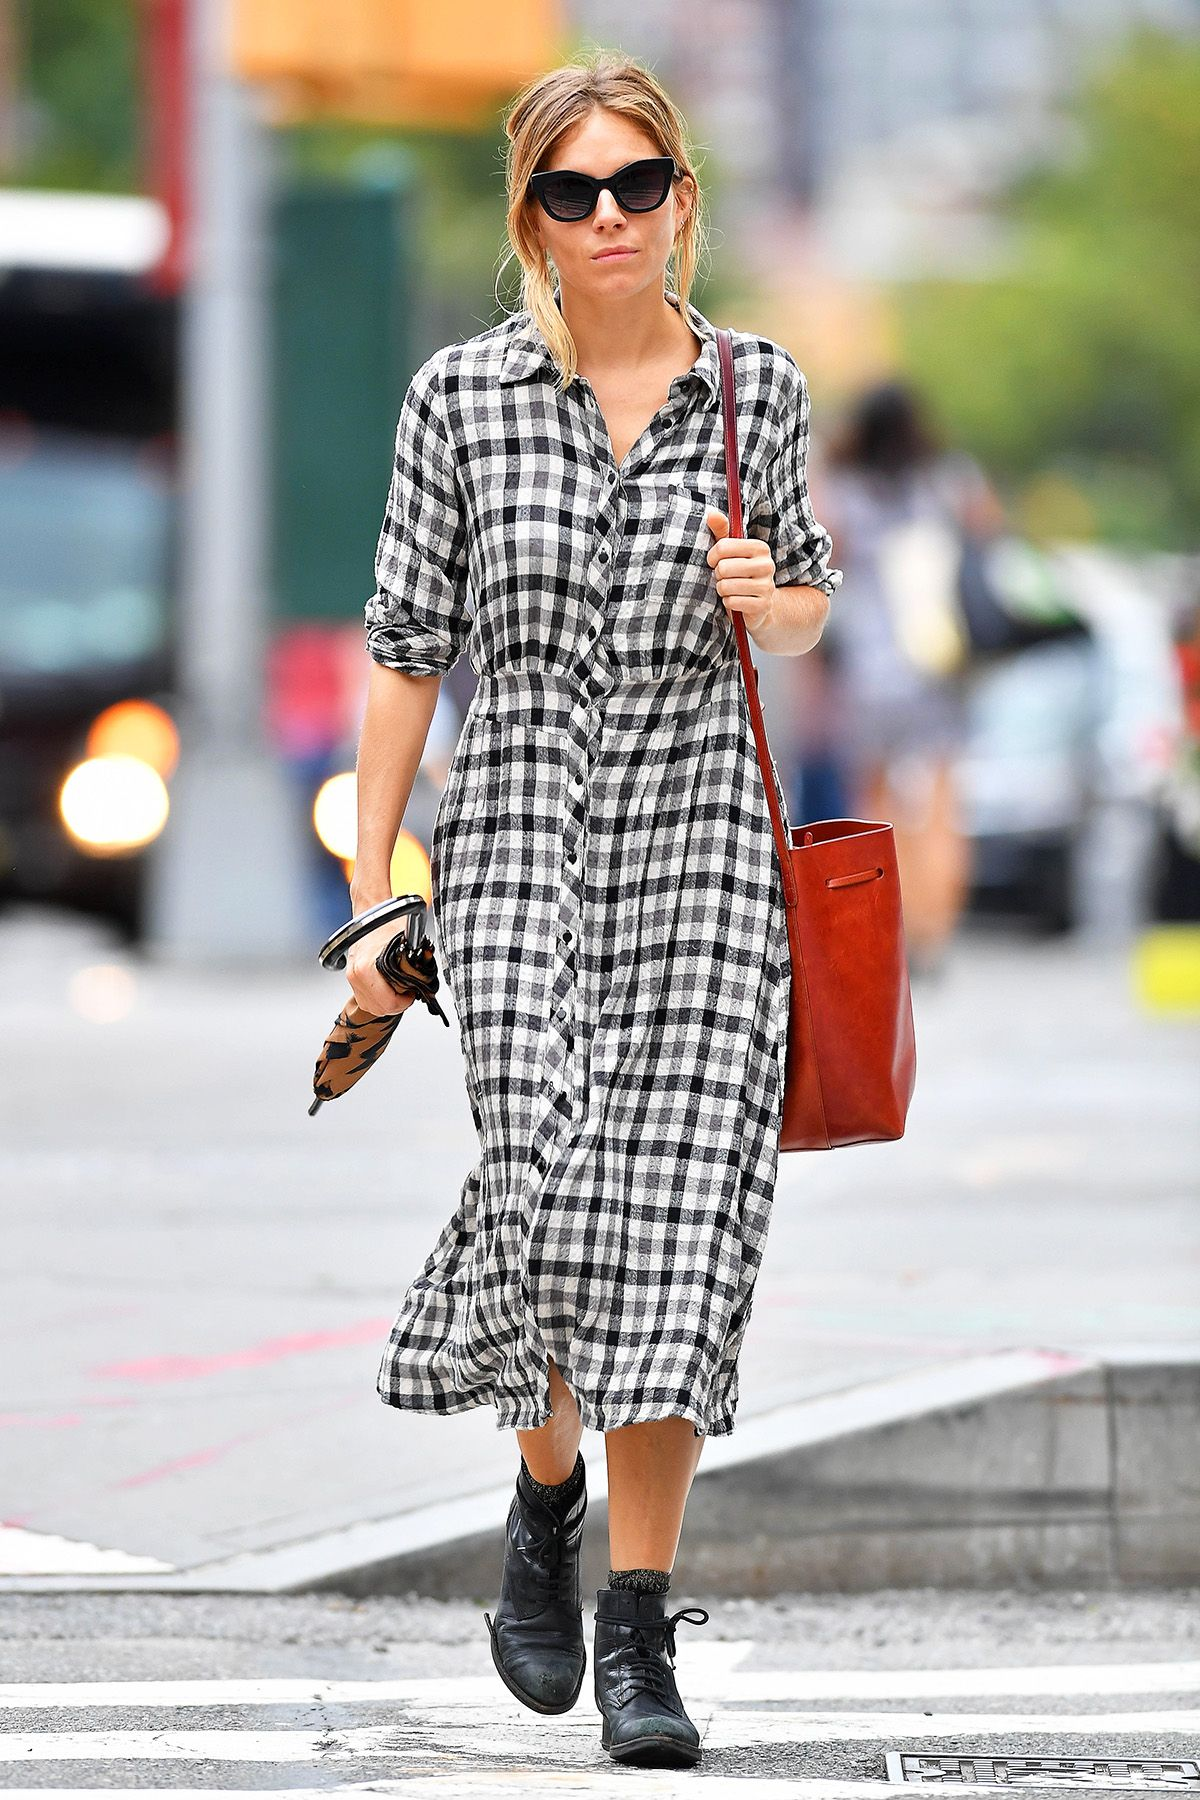 1c66fe833 Sienna Miller's Zara Dress Looks Perfect With Ankle Boots | WhoWhatWear.com  | Bloglovin'